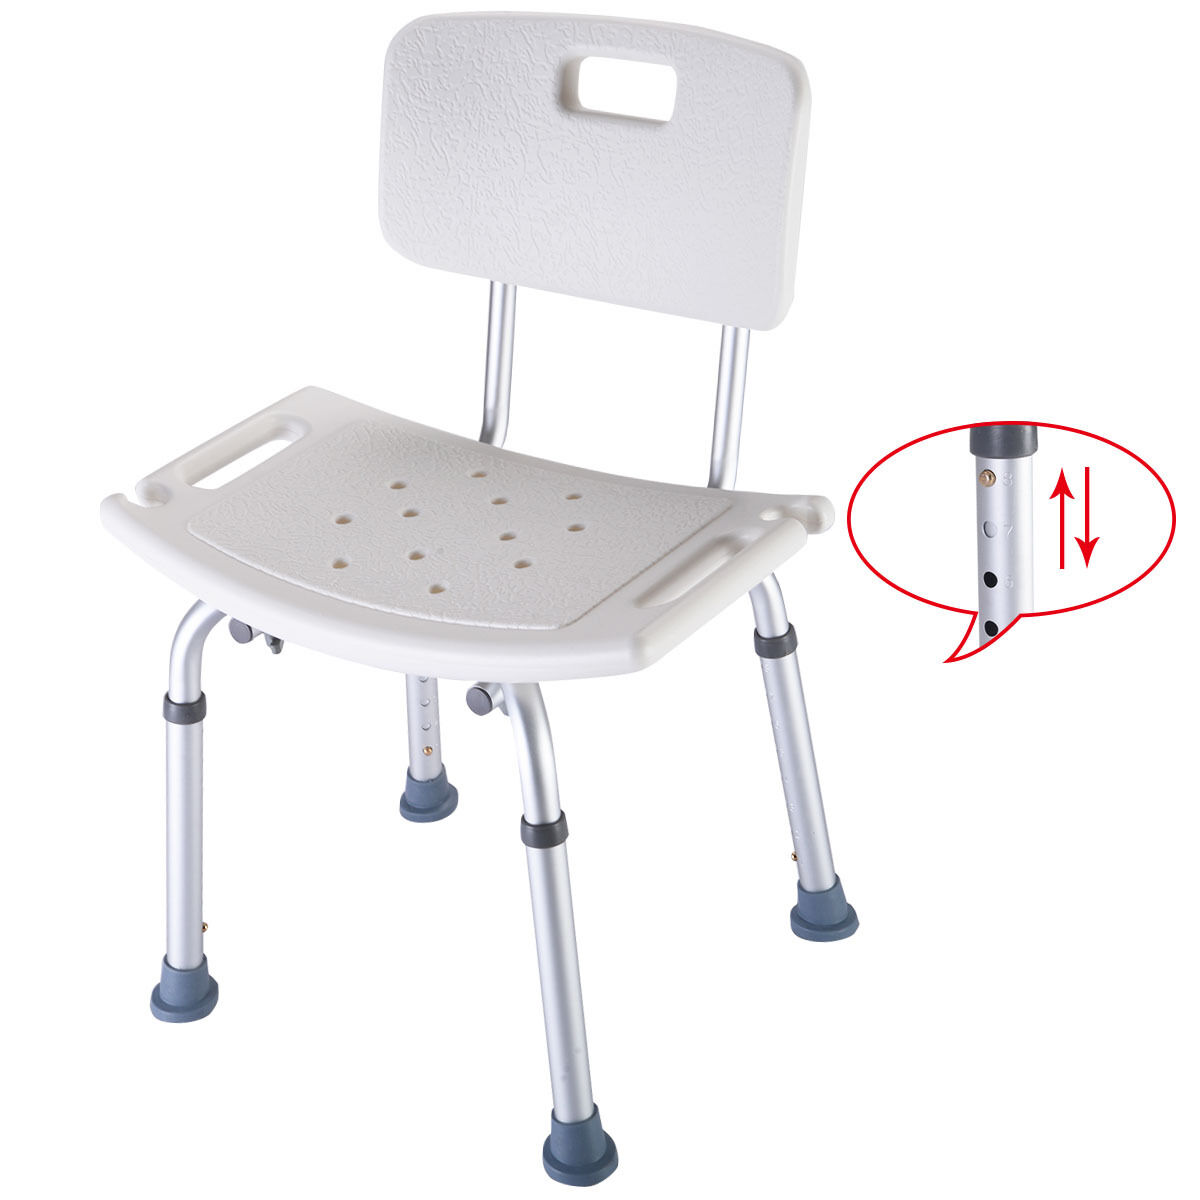 Adjustable Shower Chair 8 Height Adjustable Medical Shower Bath Chair Stool